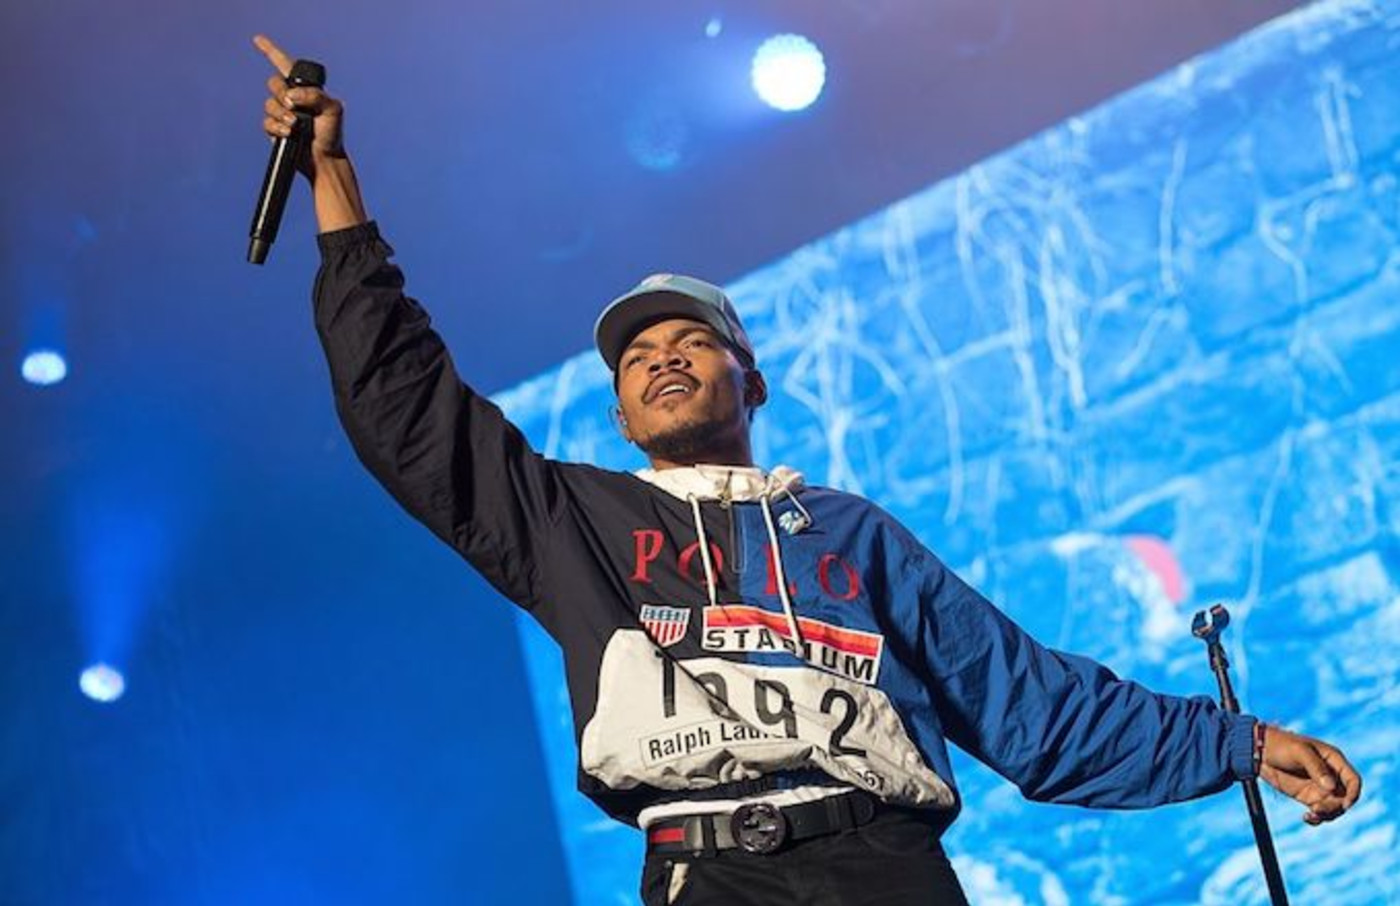 Chance the Rapper performing.